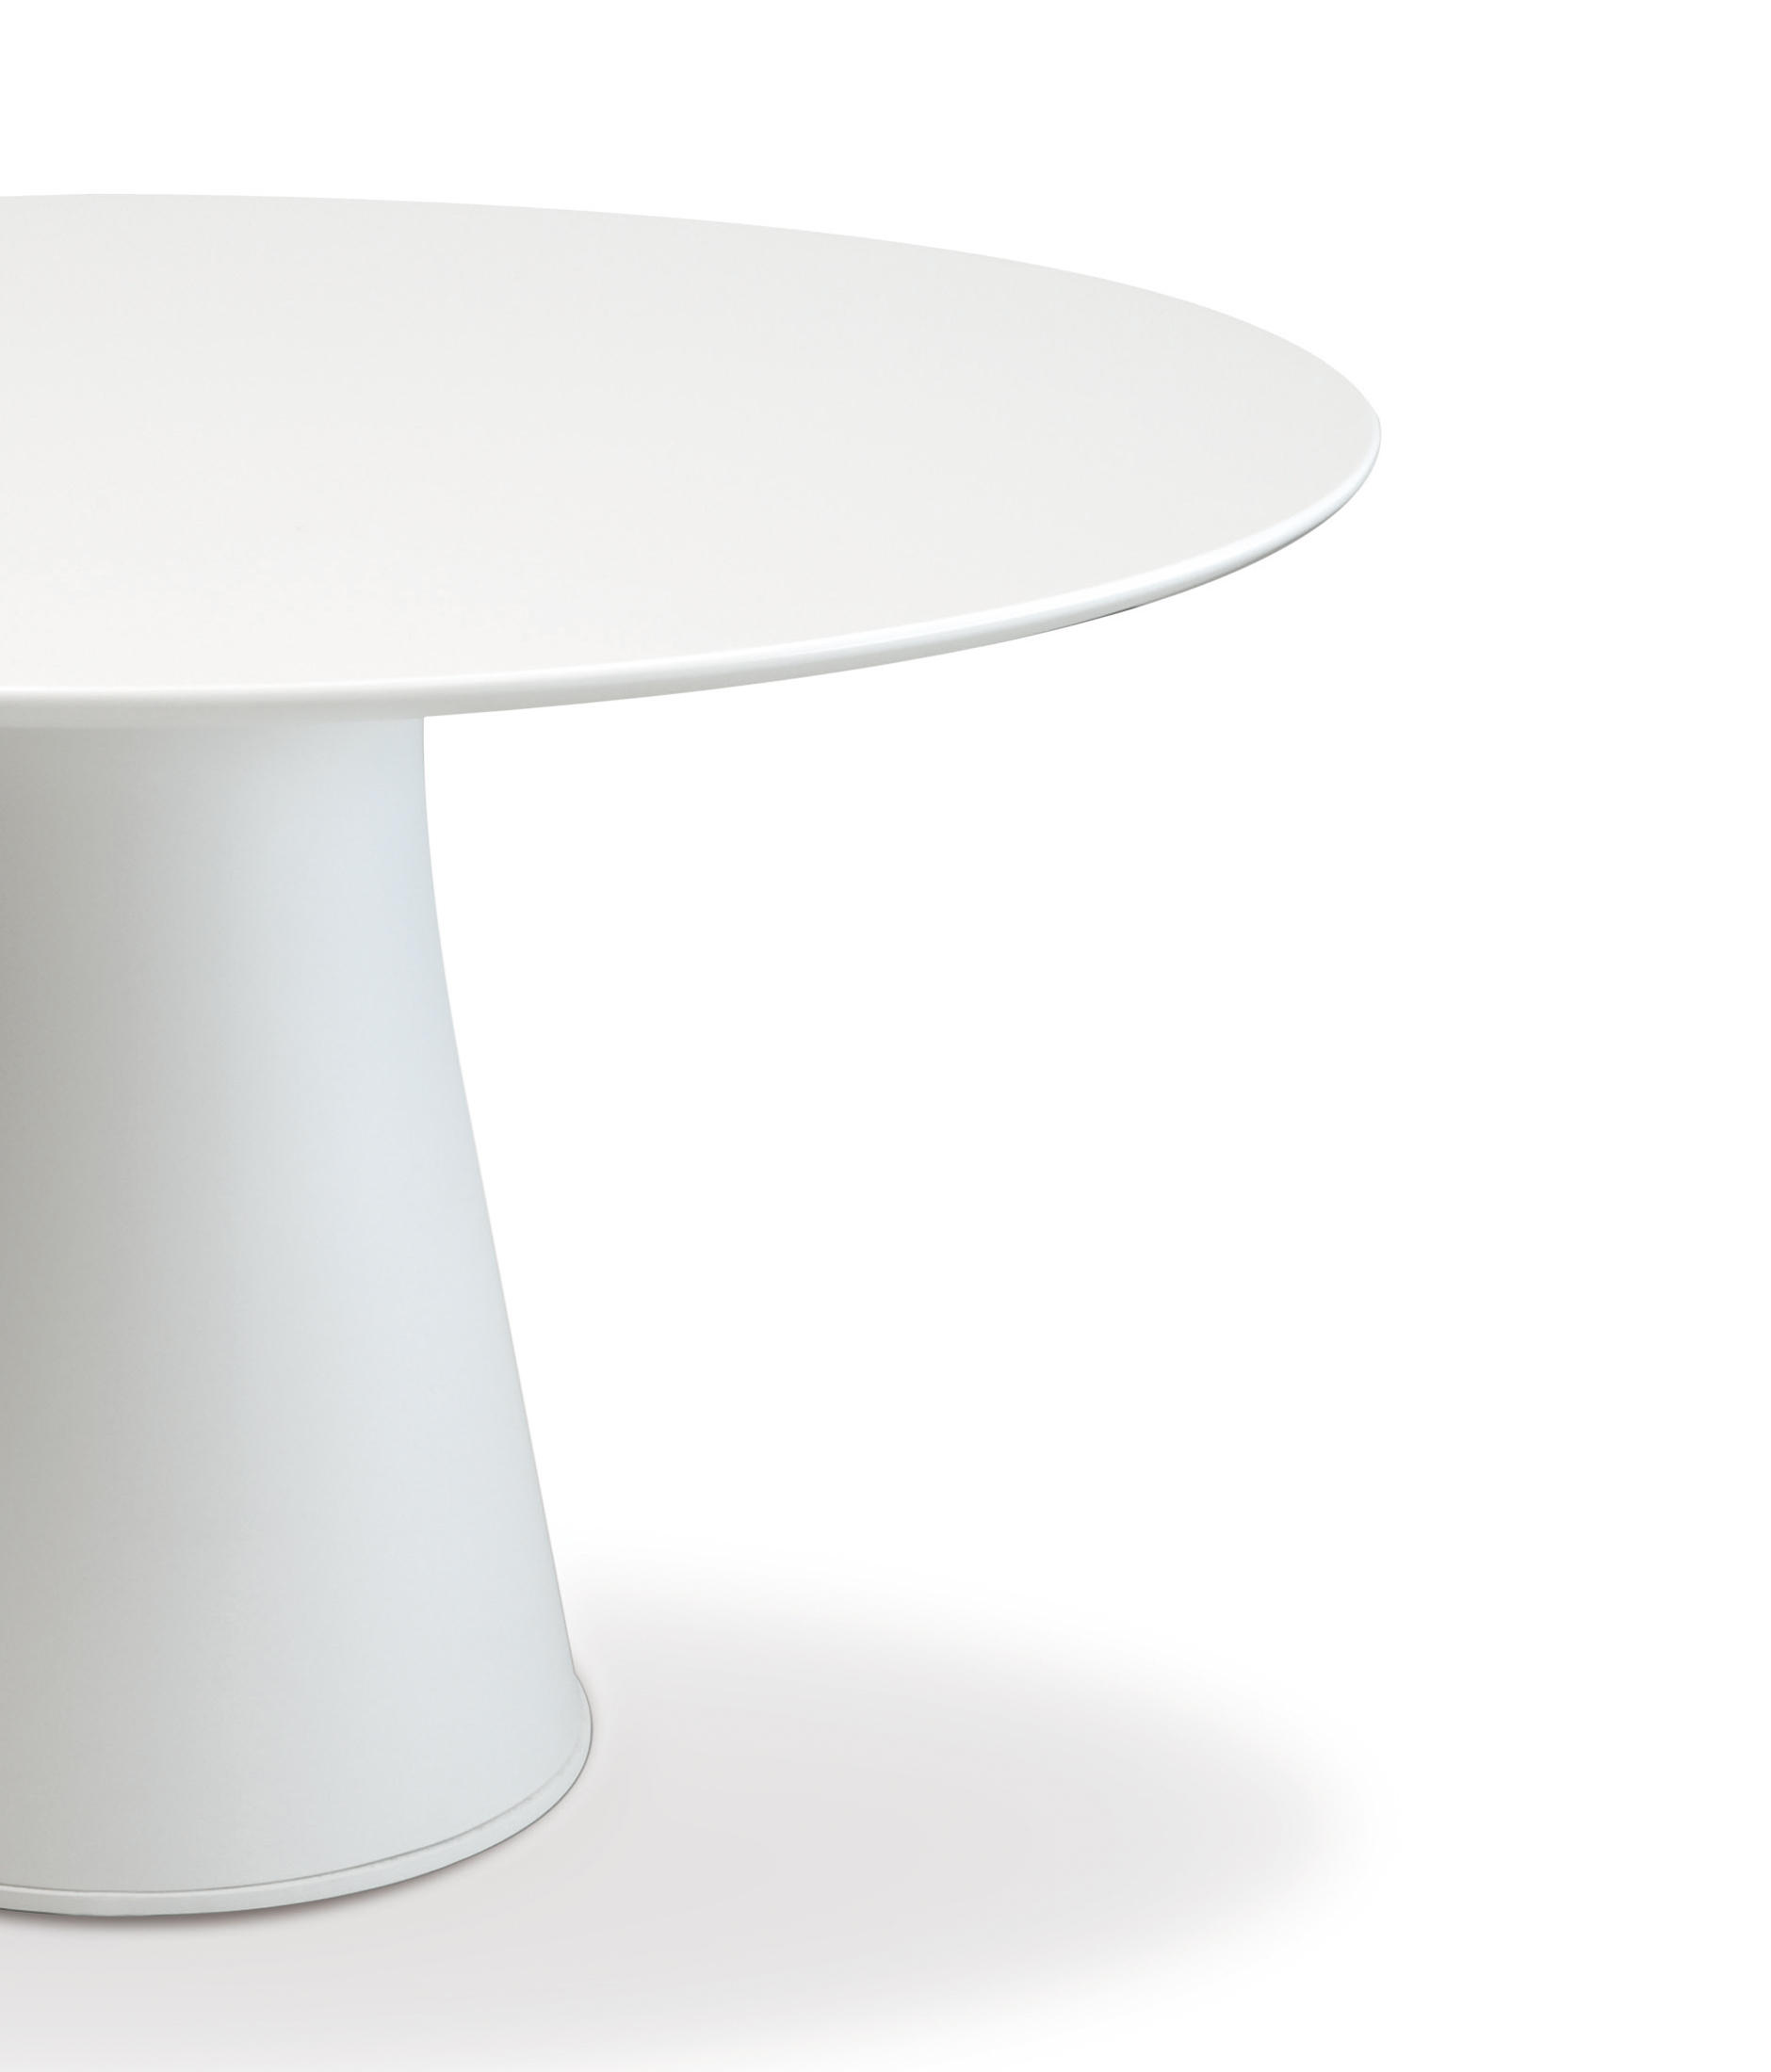 Affordable Rolf Benz By Rolf Benz Restaurant Tables With Rolf Benz Tisch